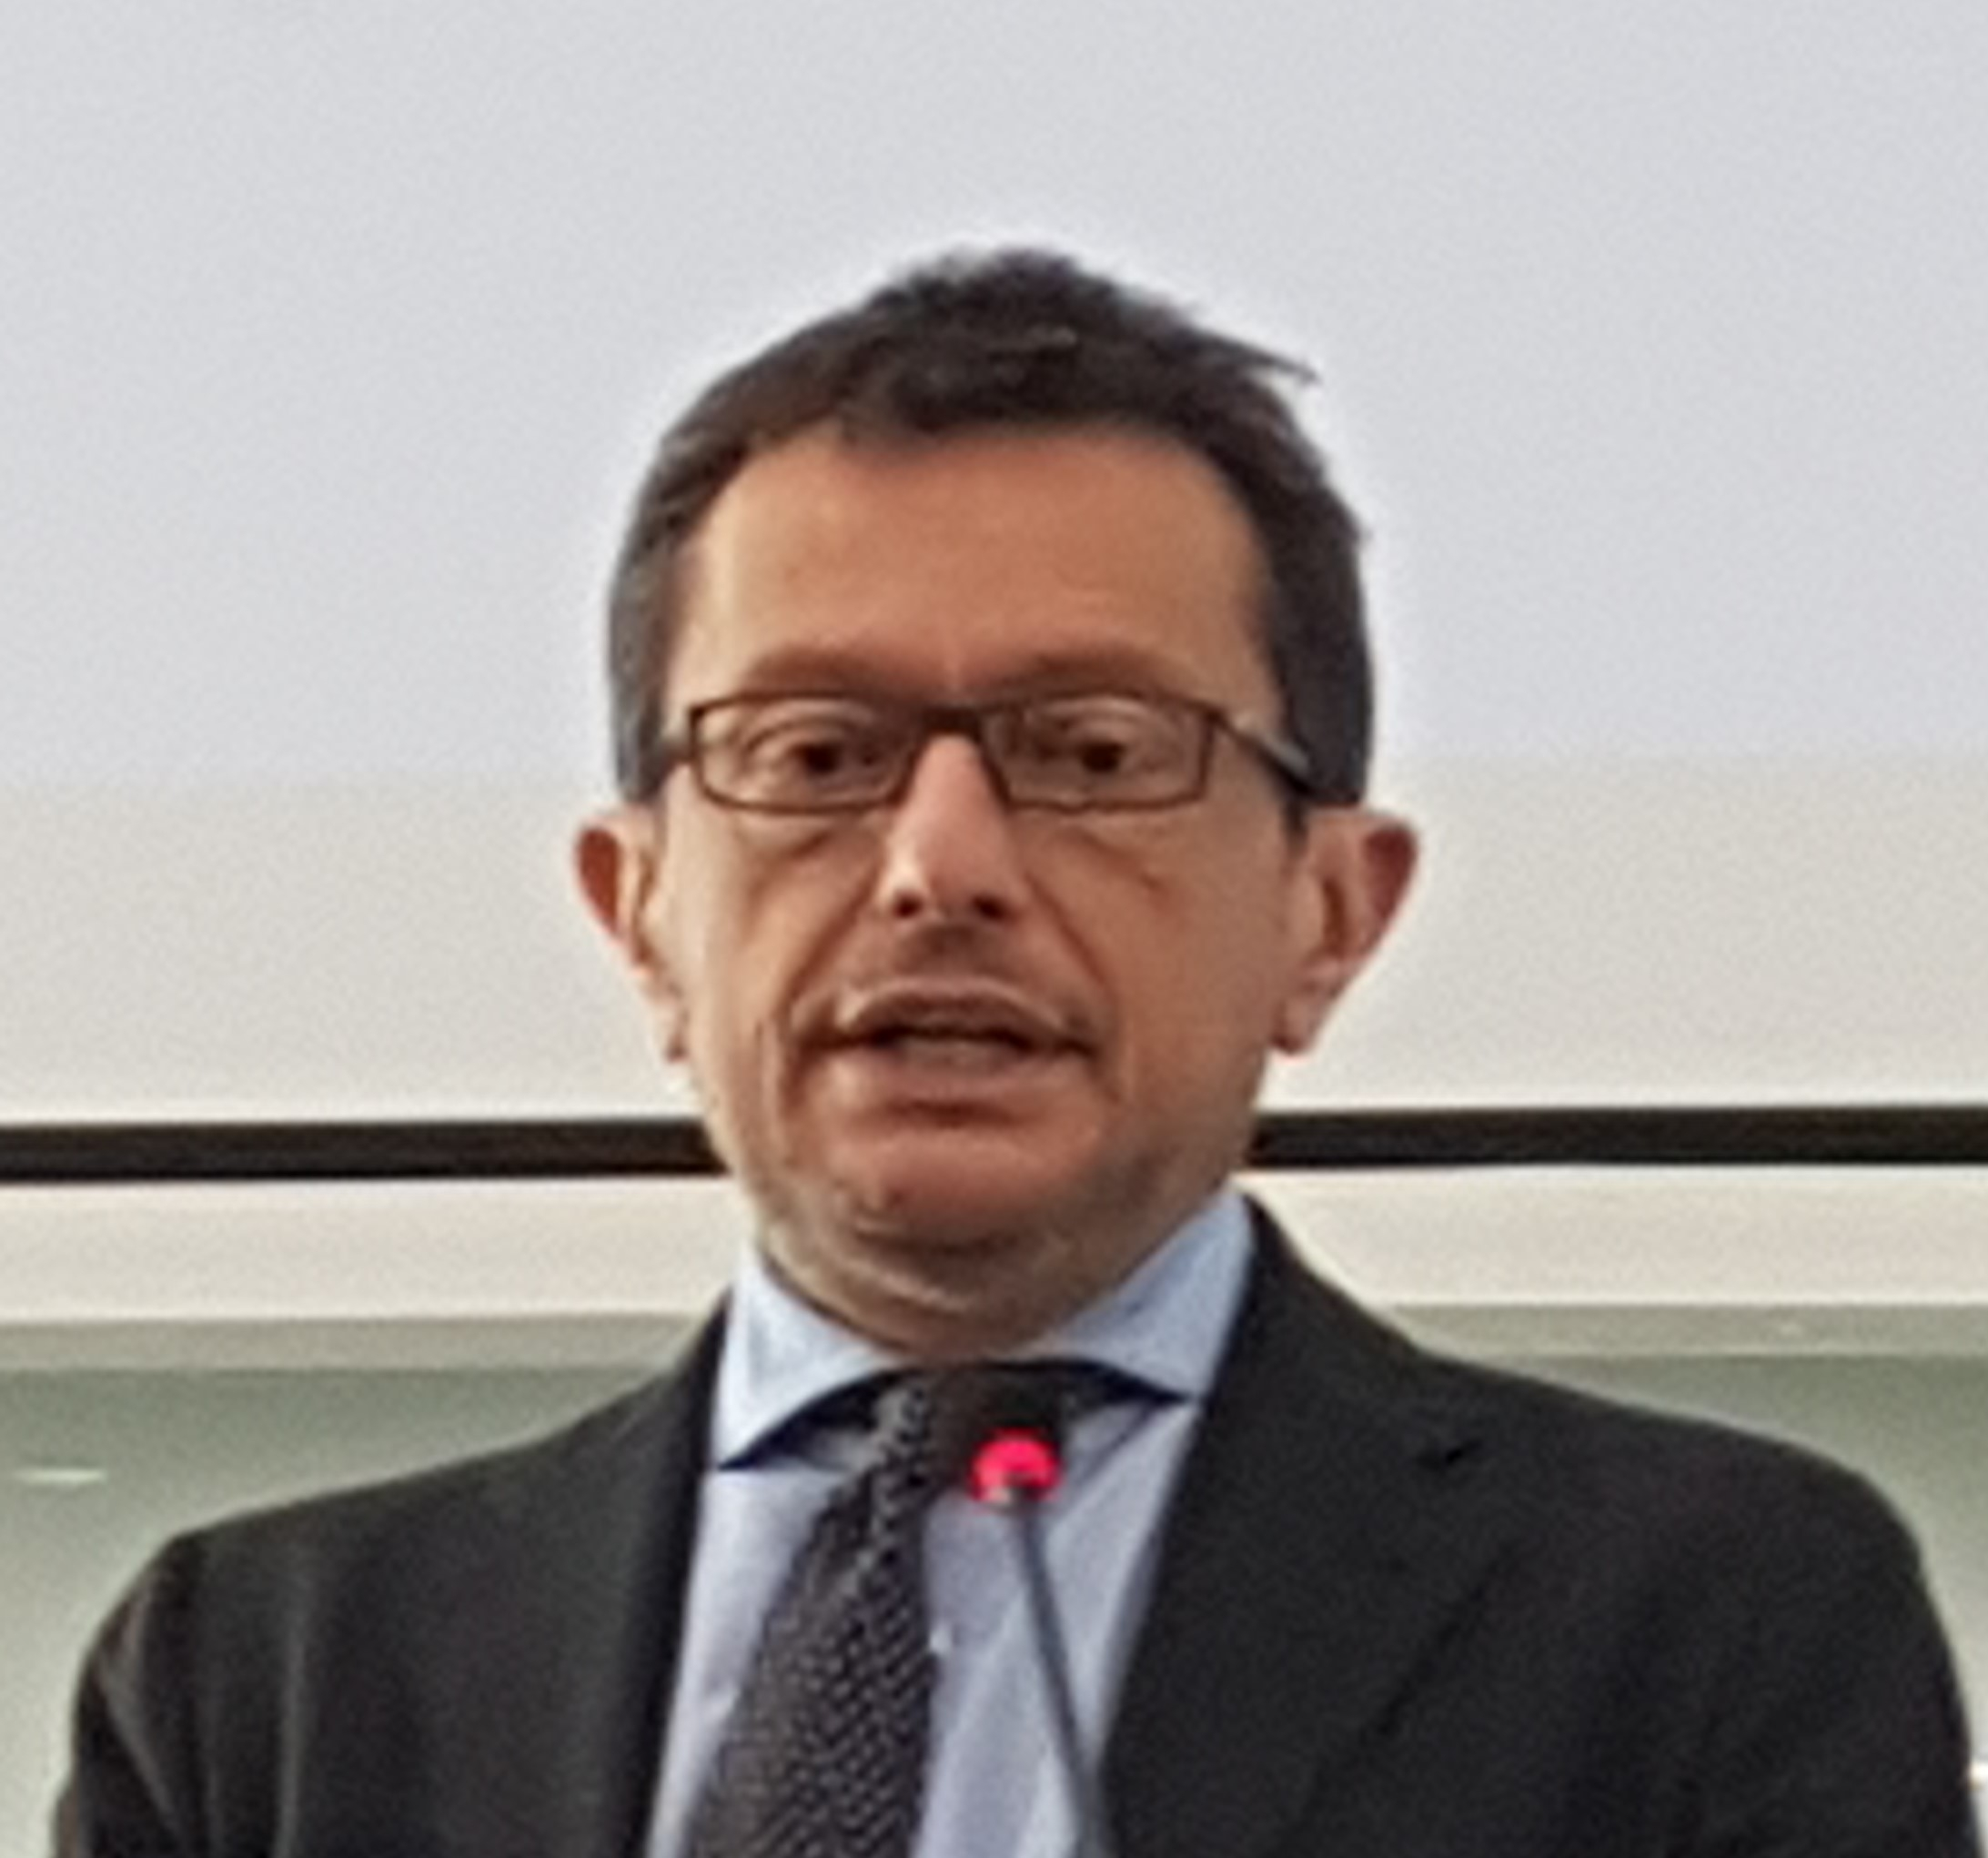 Mario Calderini, titolare del corso Social Innovation in Management Engineering, Politecnico di Milano